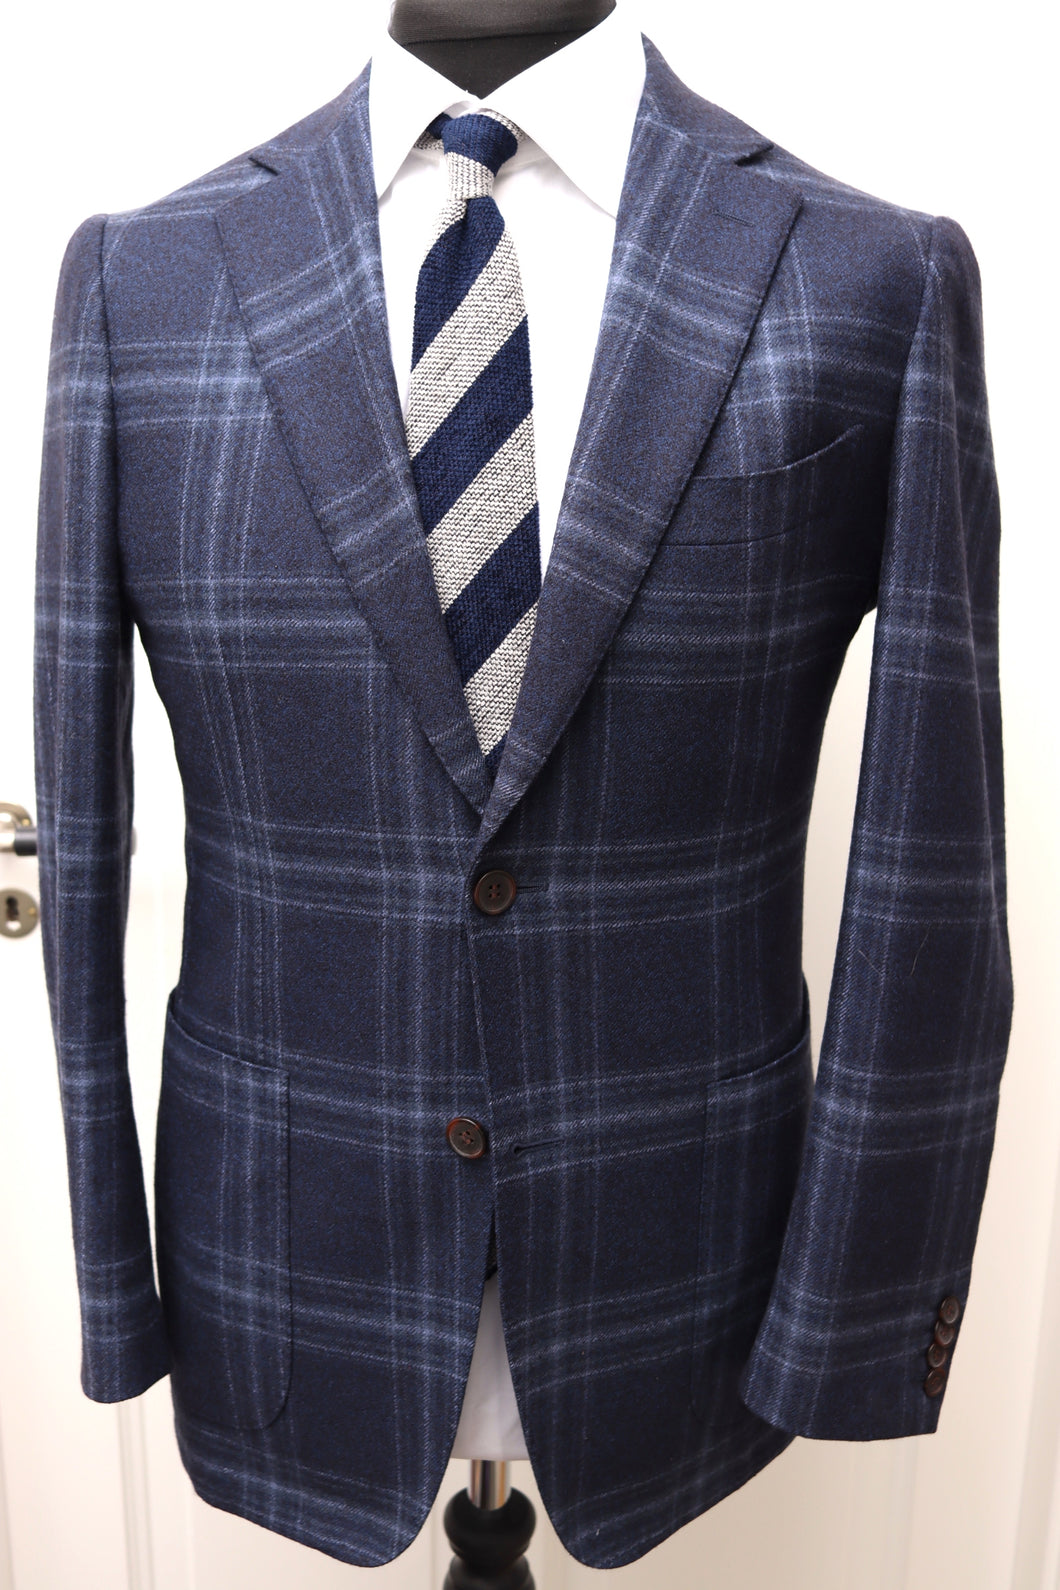 Used SUITSUPPLY HAVANA Blue Check 100% Wool Blazer - Size 38R